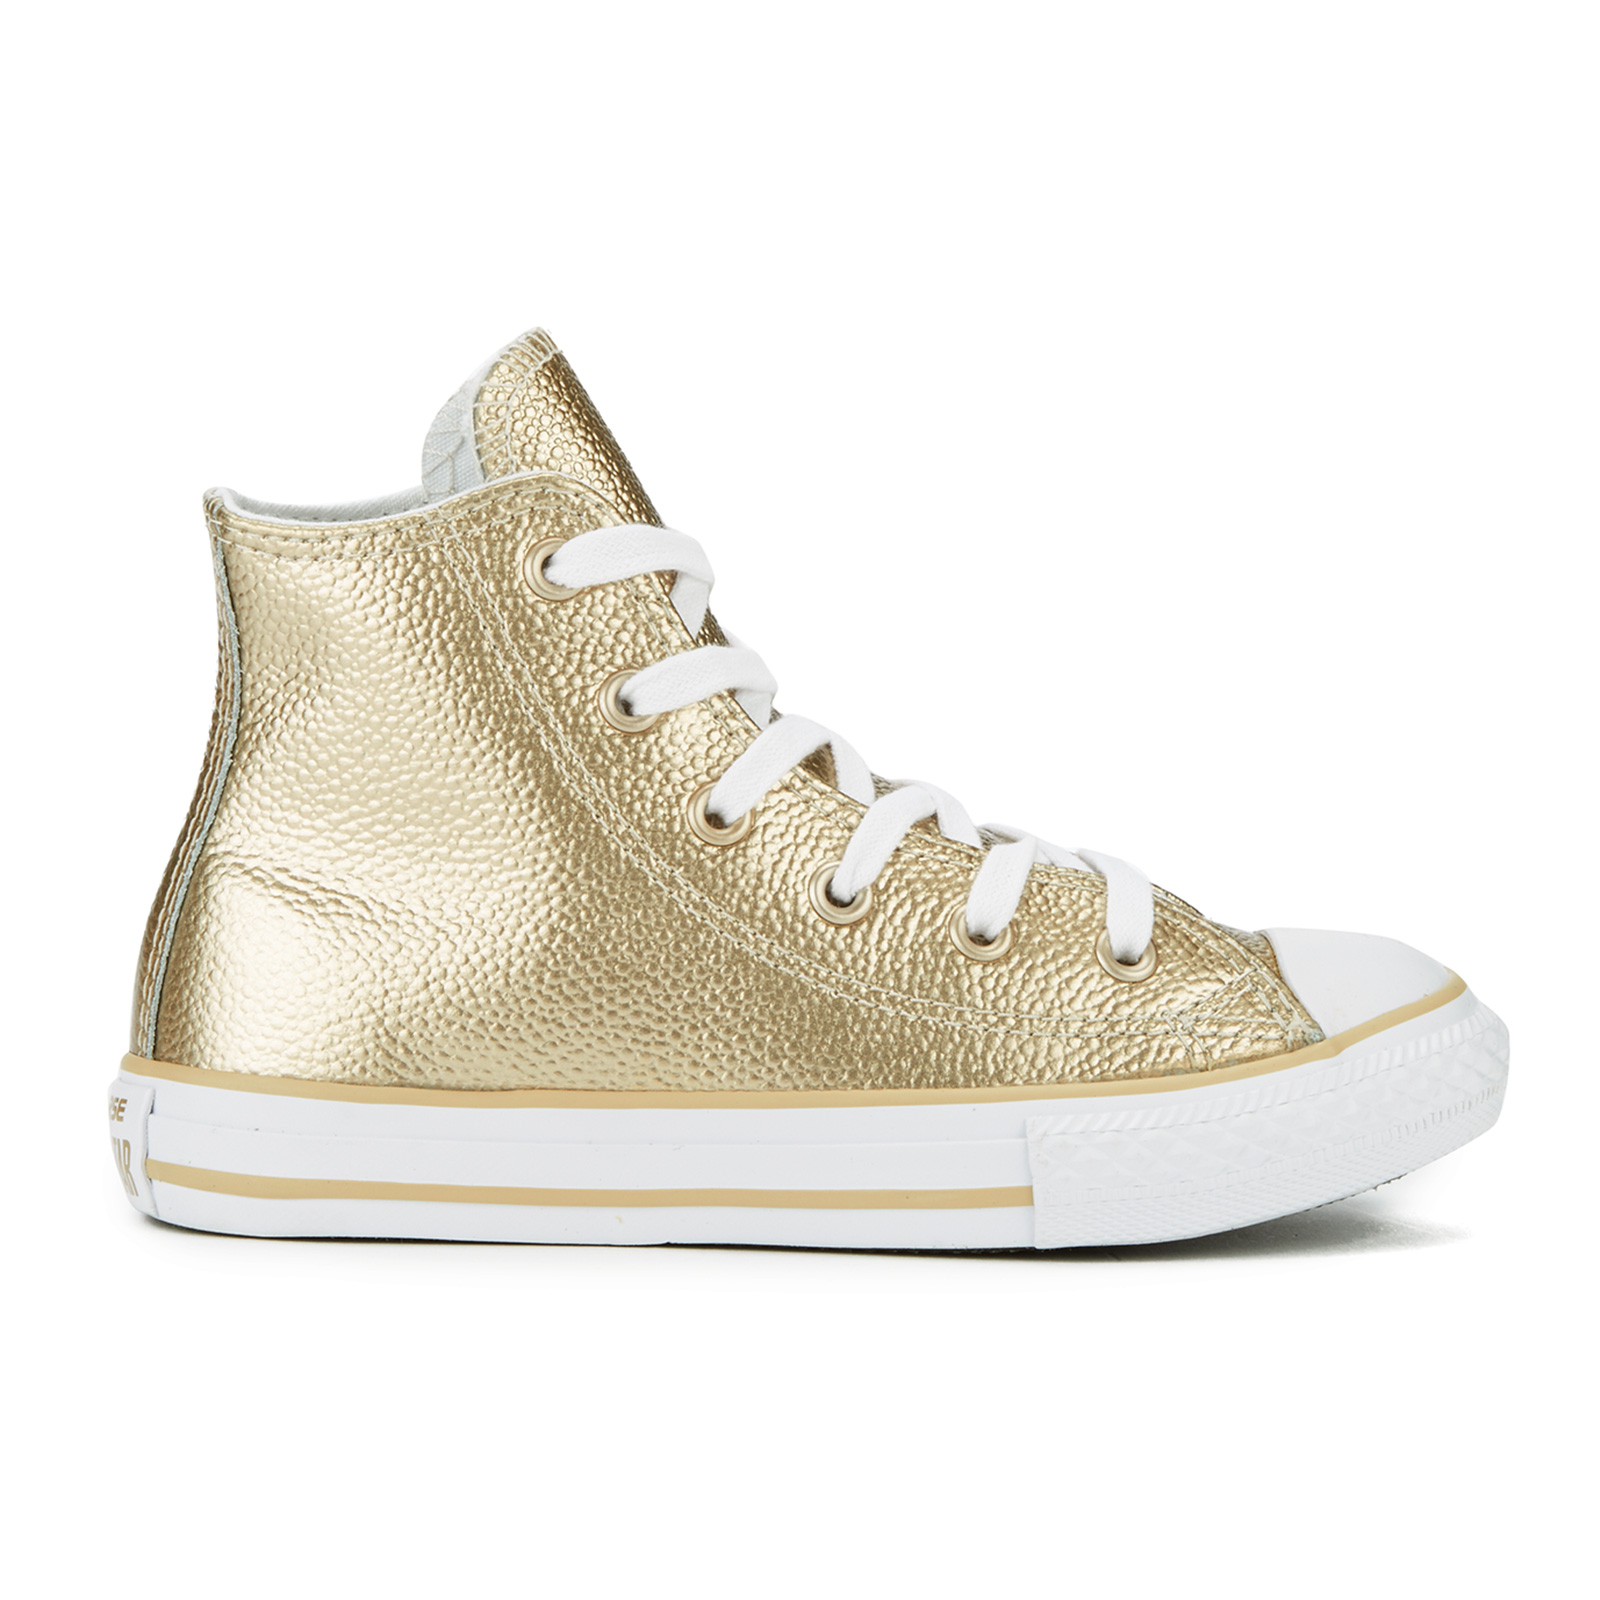 Converse Kids' Chuck Taylor All Star Metallic Leather Hi Top Trainers Light GoldWhiteWhite